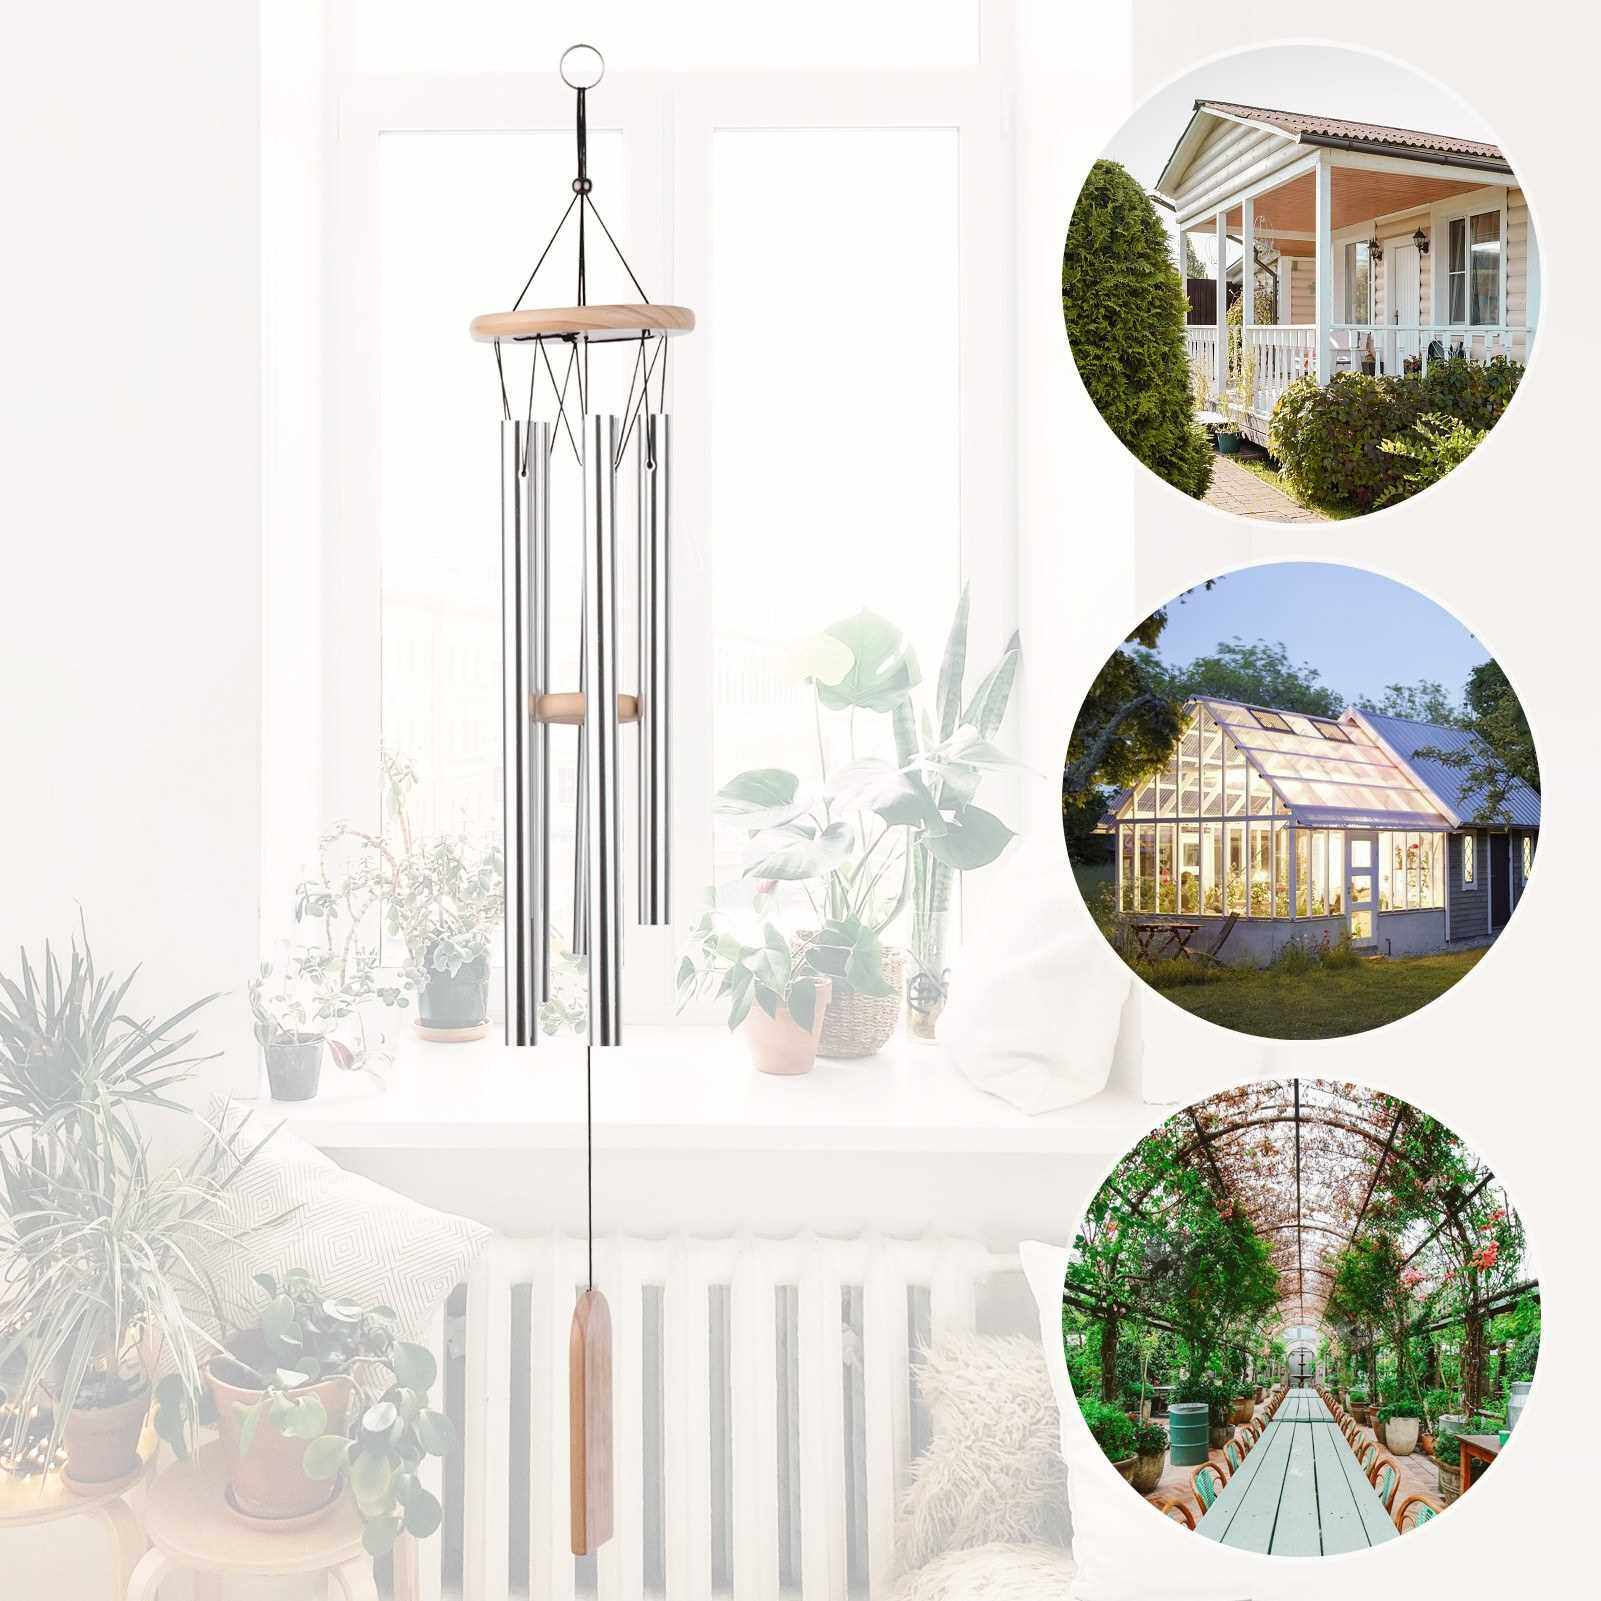 5 Chimes Wooden Wind Chimes Aluminum Tubes Solid Wood for Bedroom Balcony Door Garden Yard Decoration (Silver)